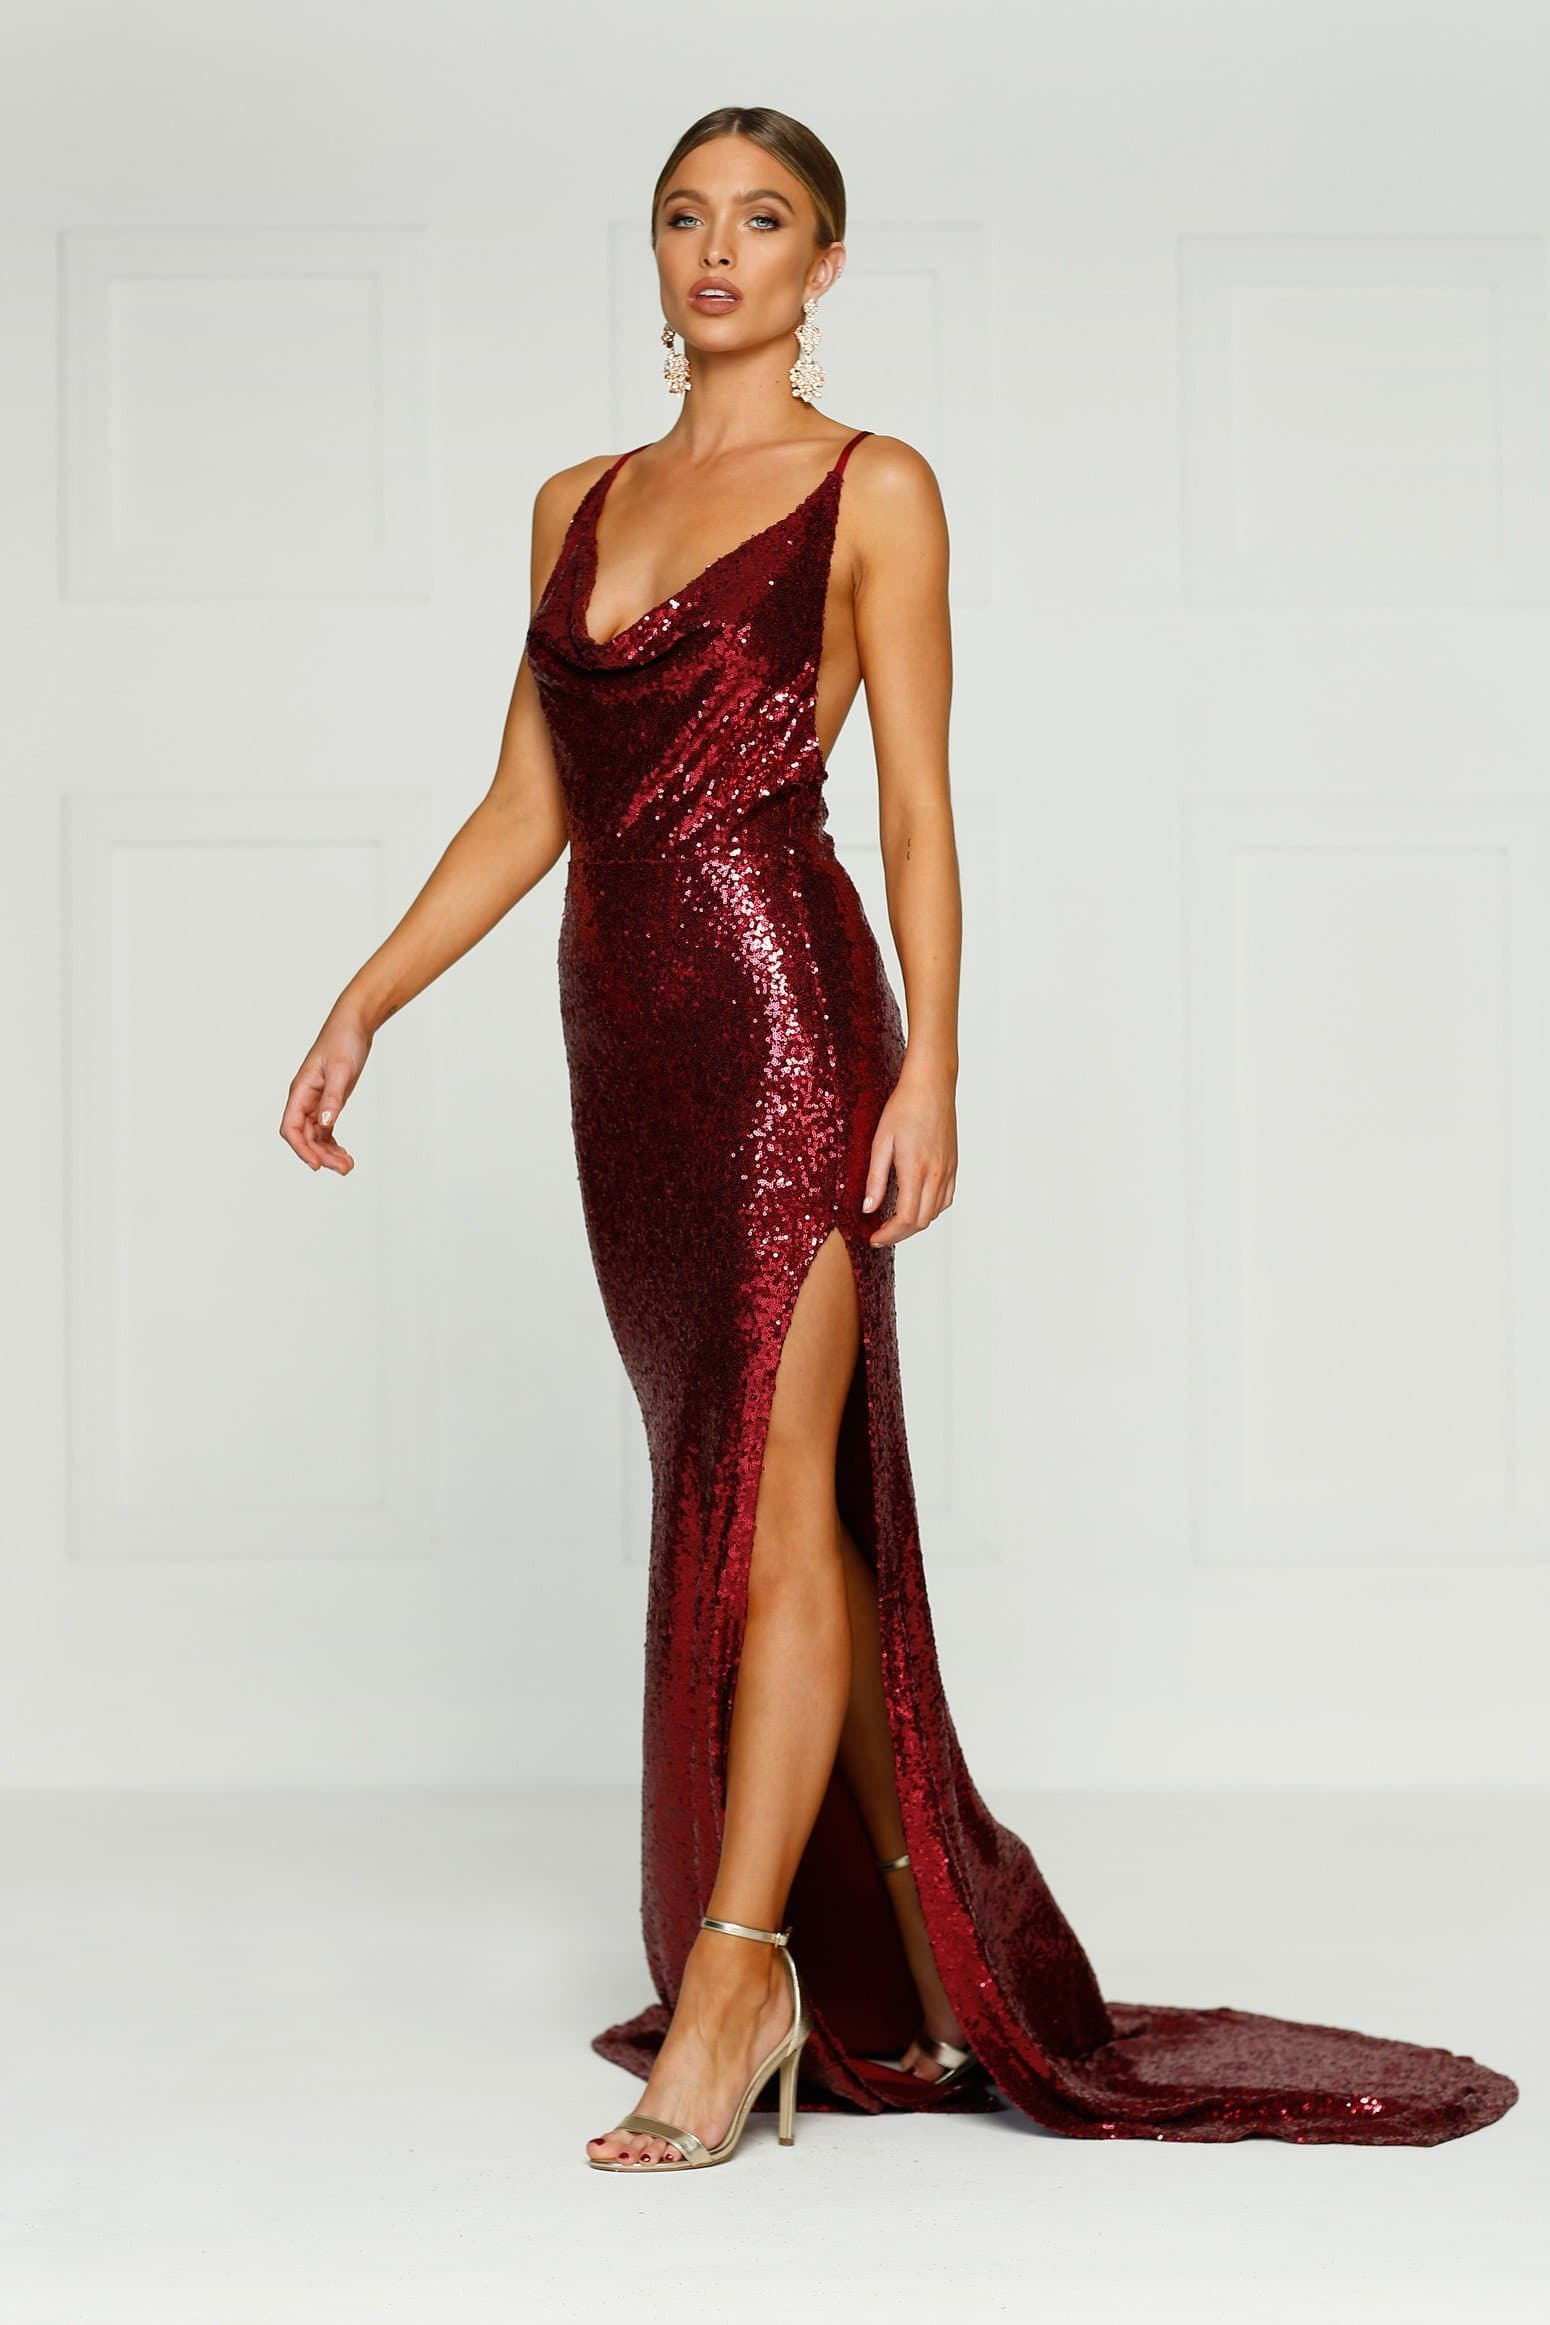 2c079c3436b8 Andriana - Burgundy Sequin Gown with Cowl Neck, Low Back & Side Slit